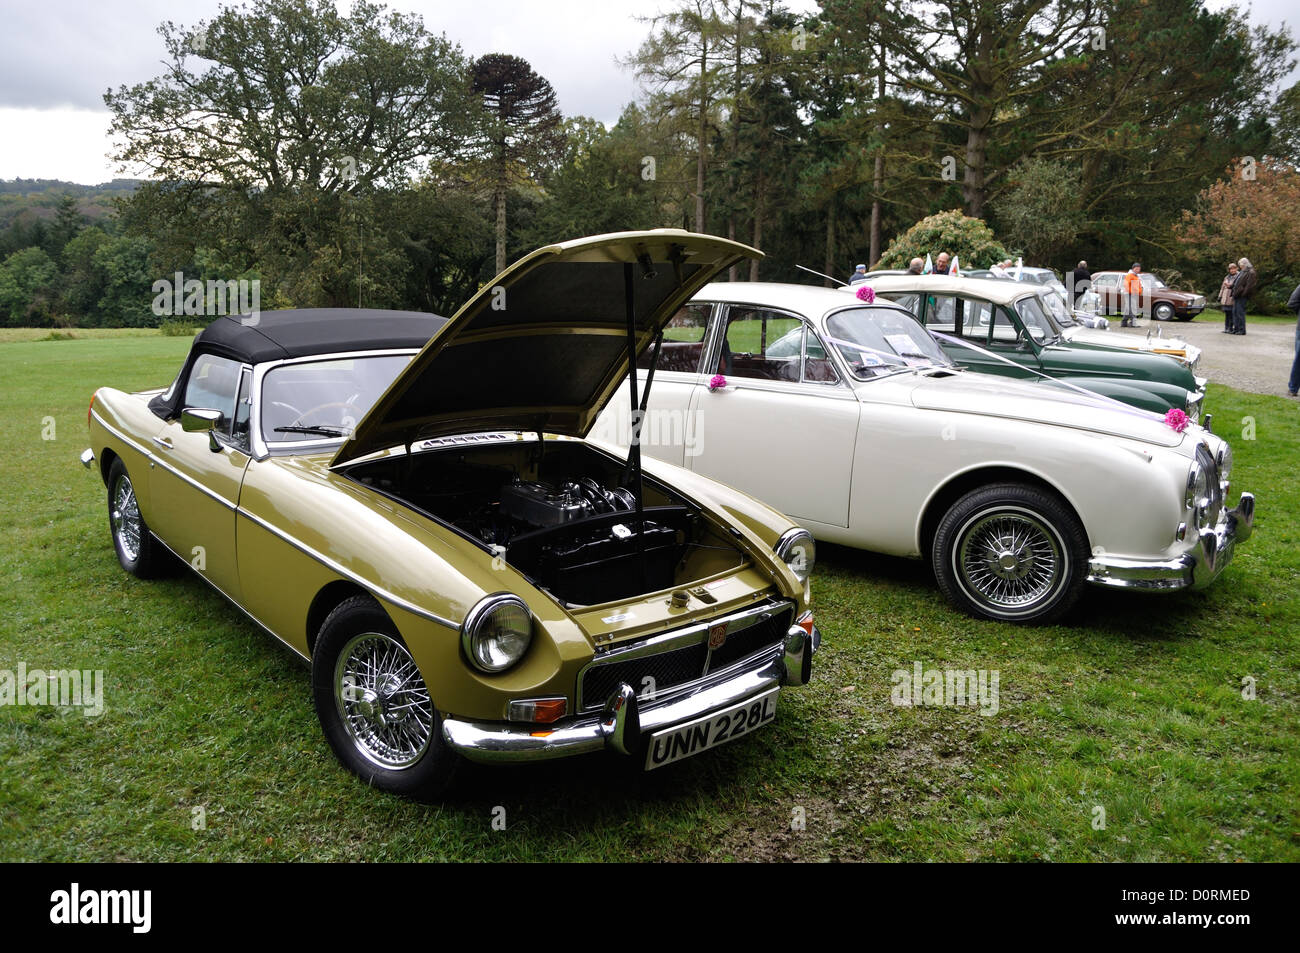 MGB convertible at classic car show rally rhos y gilwen pembrokeshire wales - Stock Image